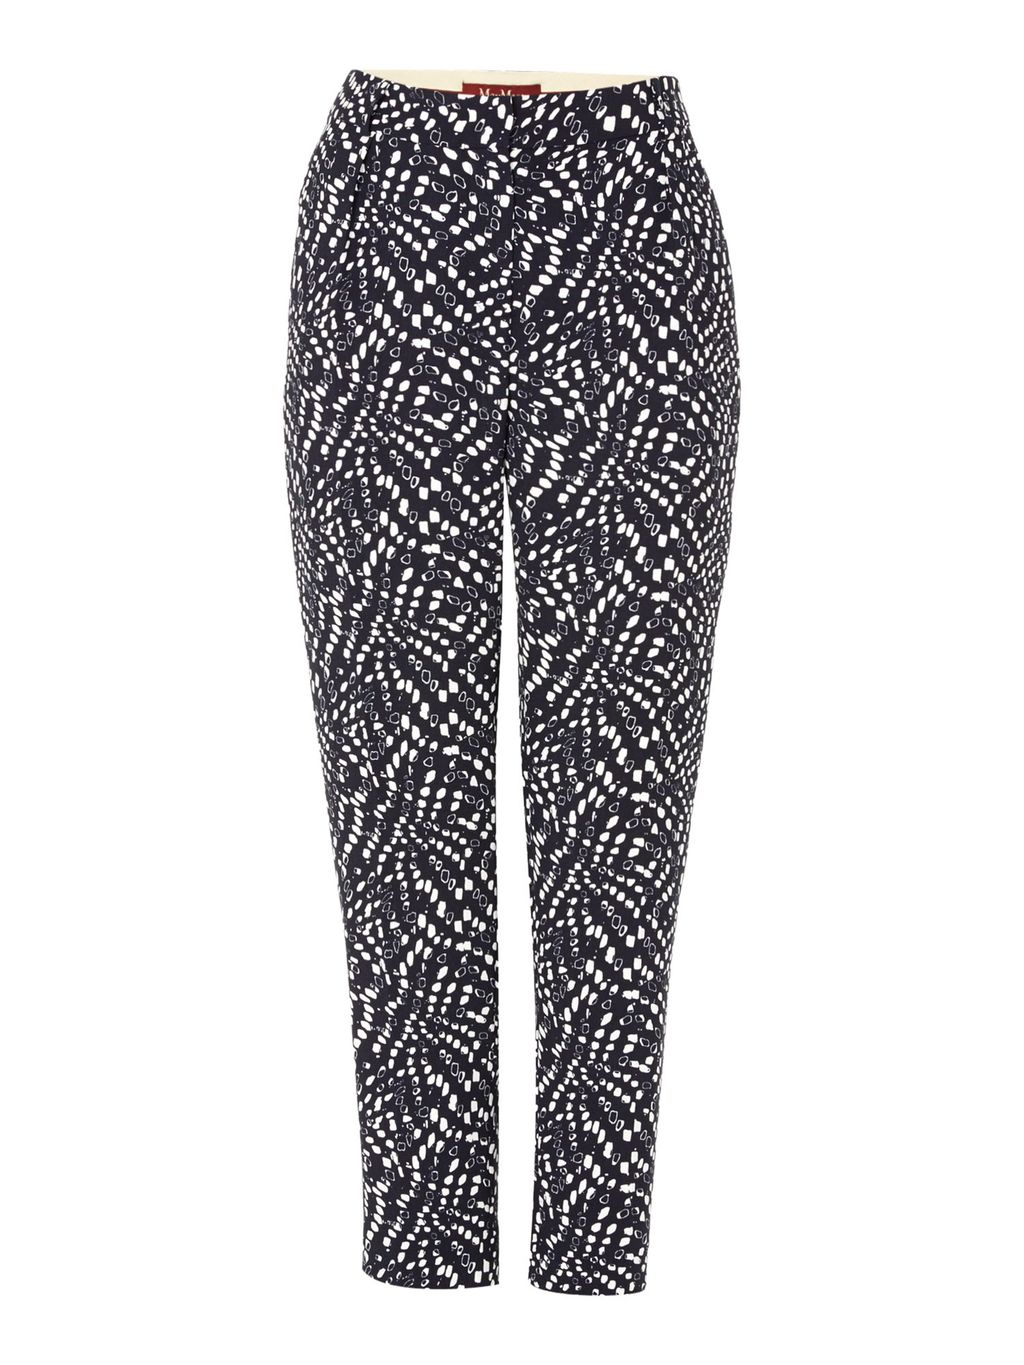 Cinque Printed Tapered Trousers, Blue Multi - style: peg leg; waist: mid/regular rise; secondary colour: white; predominant colour: navy; occasions: casual, creative work; length: ankle length; fibres: polyester/polyamide - 100%; fit: tapered; pattern type: fabric; pattern: patterned/print; texture group: other - light to midweight; pattern size: standard (bottom); season: a/w 2015; wardrobe: highlight